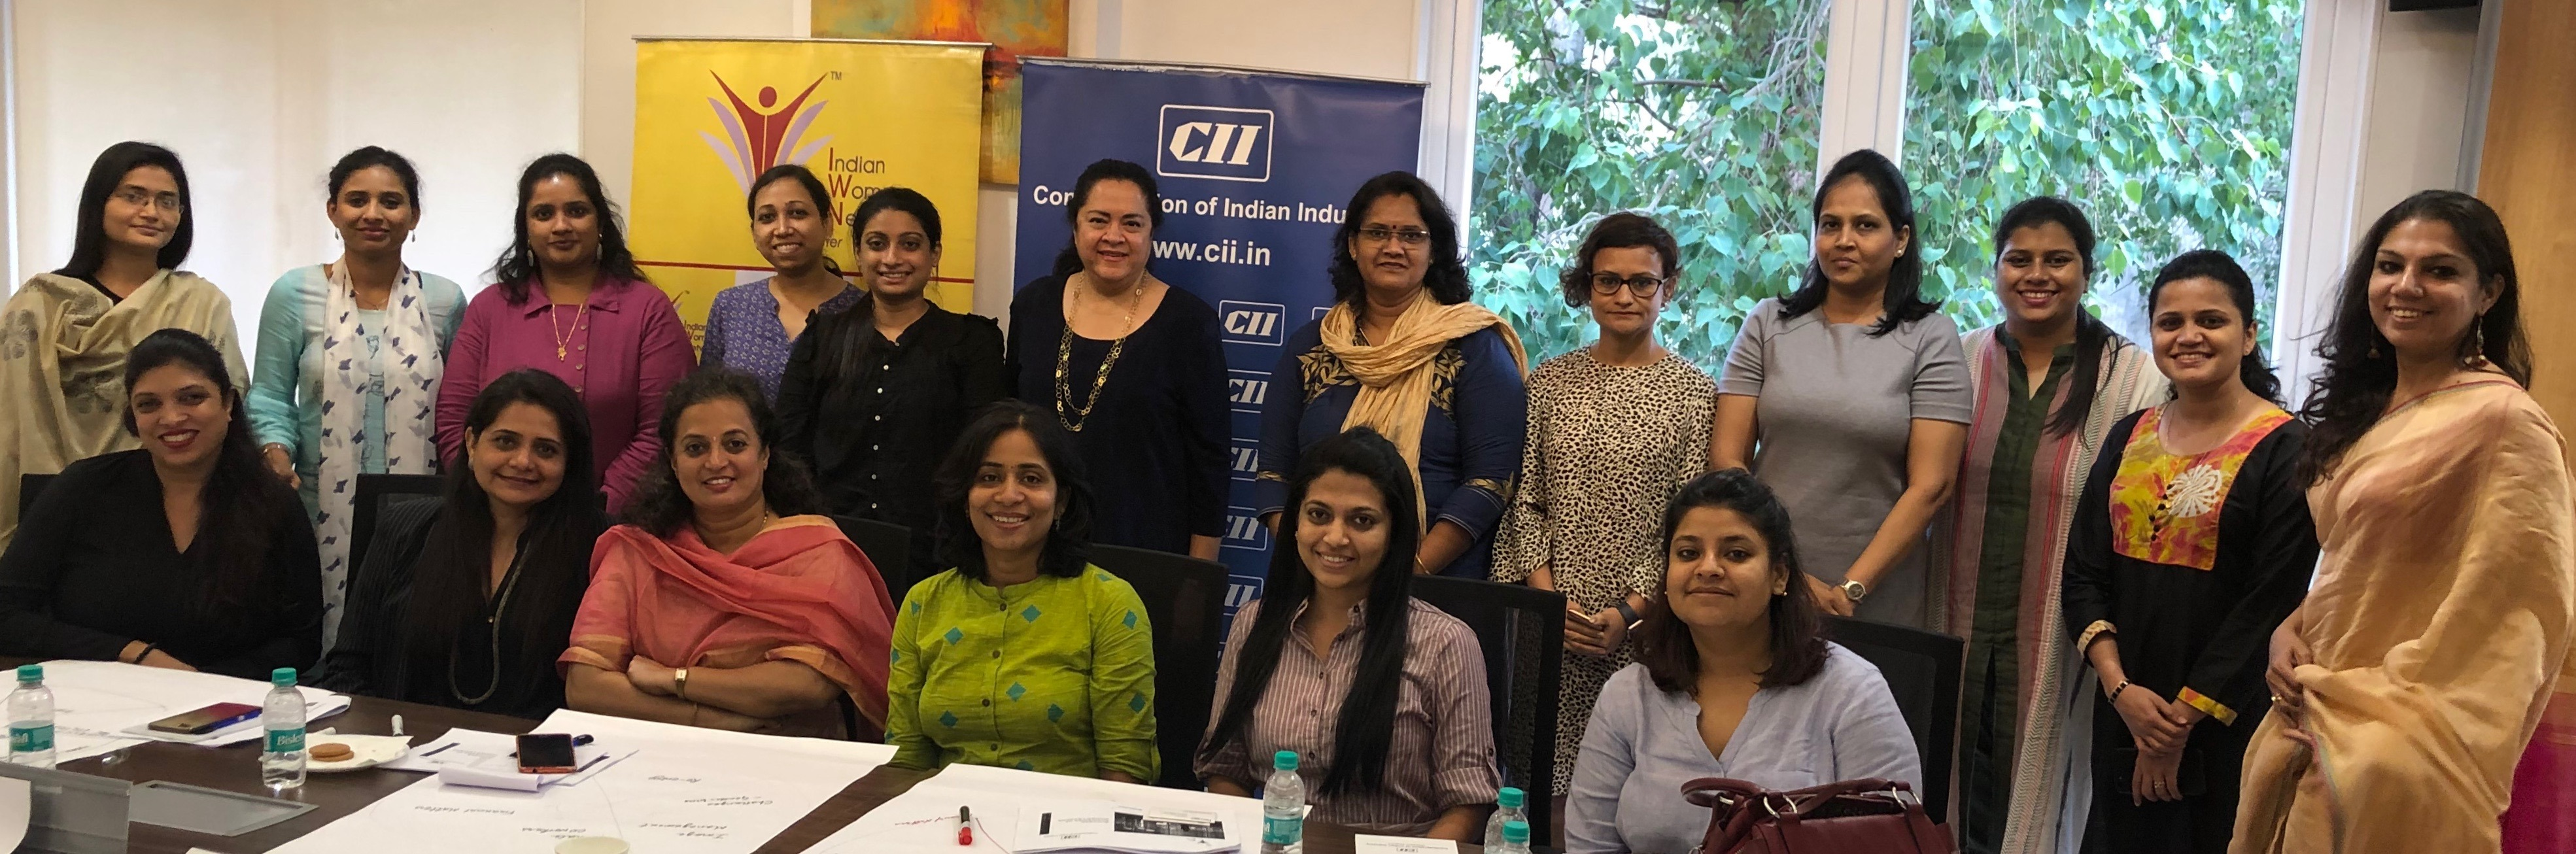 CII IWN Maharashtra Chapter - Workshop on Success Strategies for Women Executives